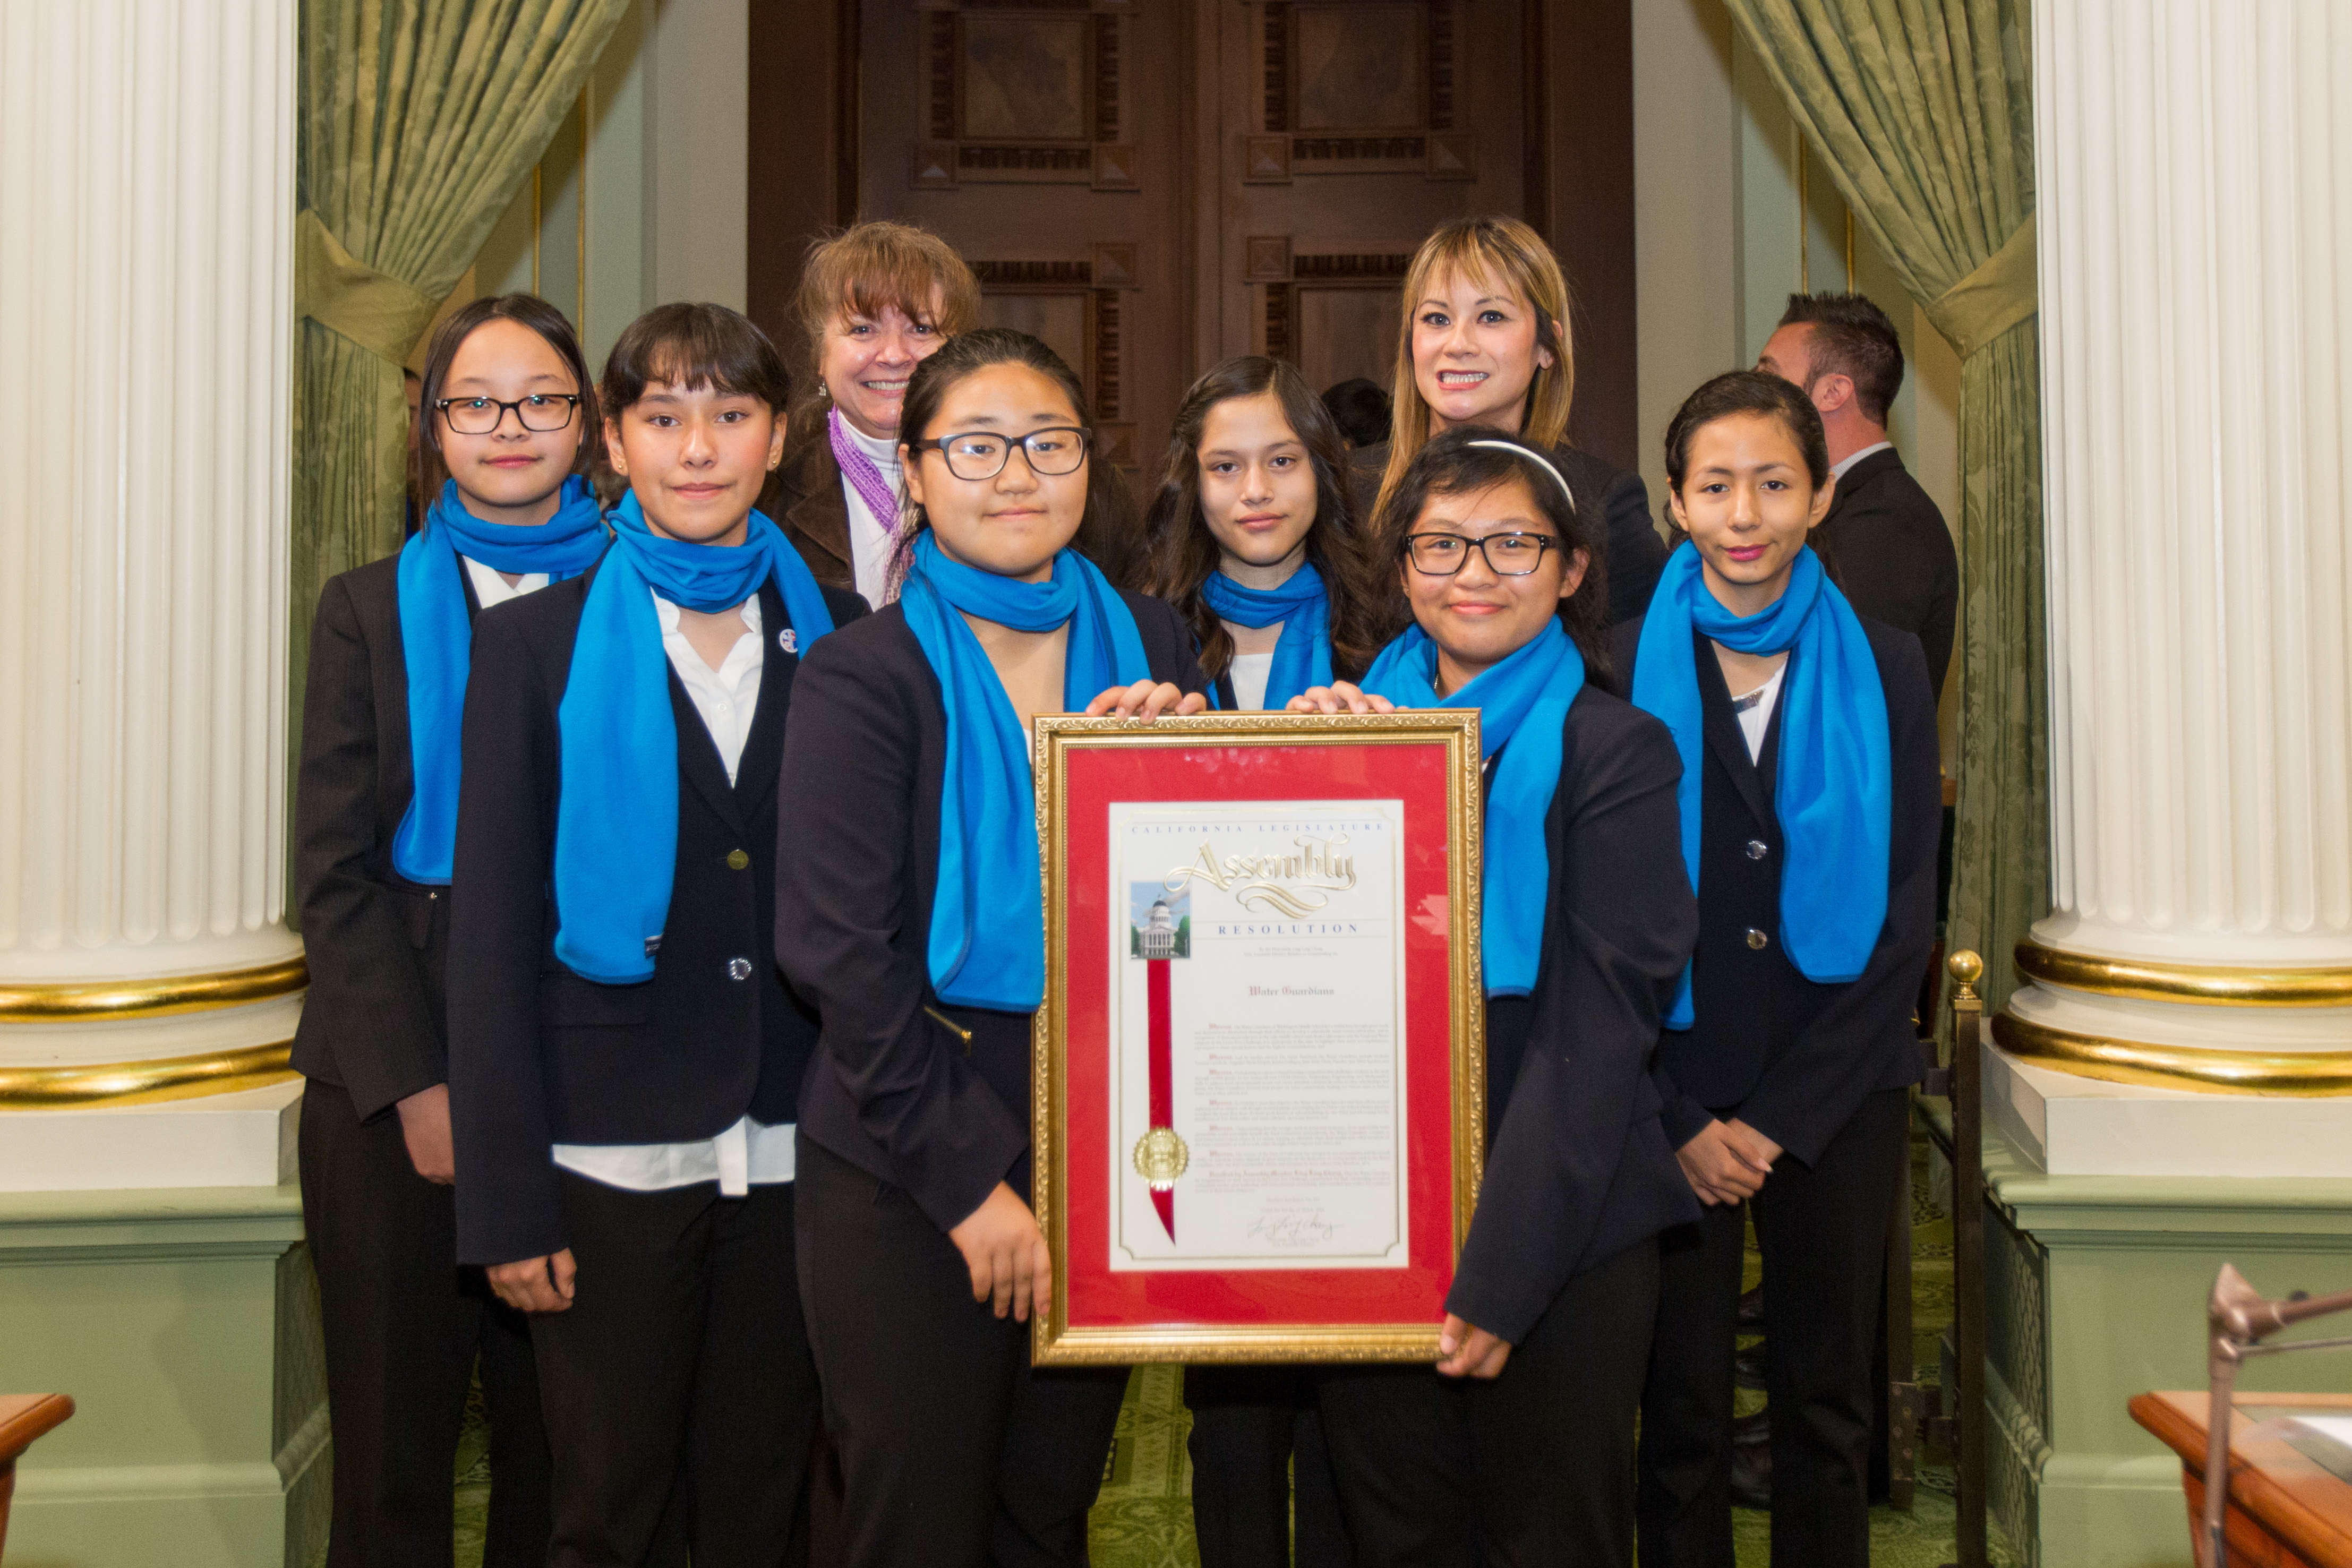 Students from Washington Middle School in La Habra being honored in Sacramento